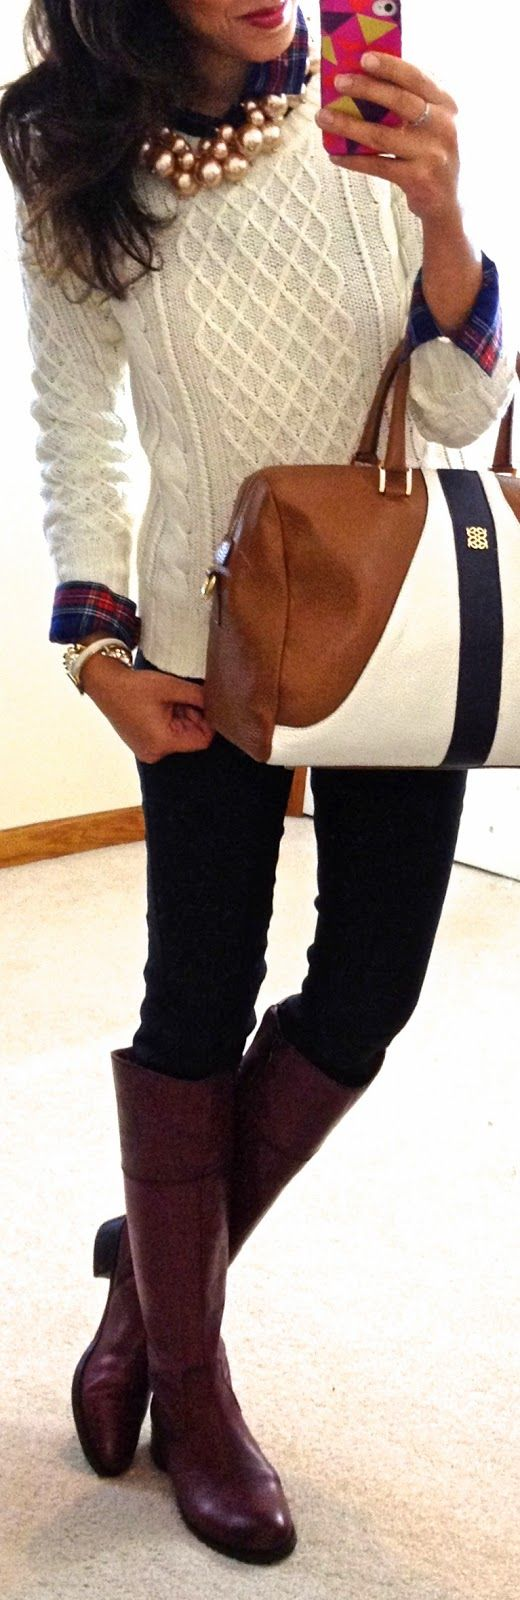 Plaid button-up, cable knit sweater, chunky pearls, boots, & Angel Reinares Bobal satchel